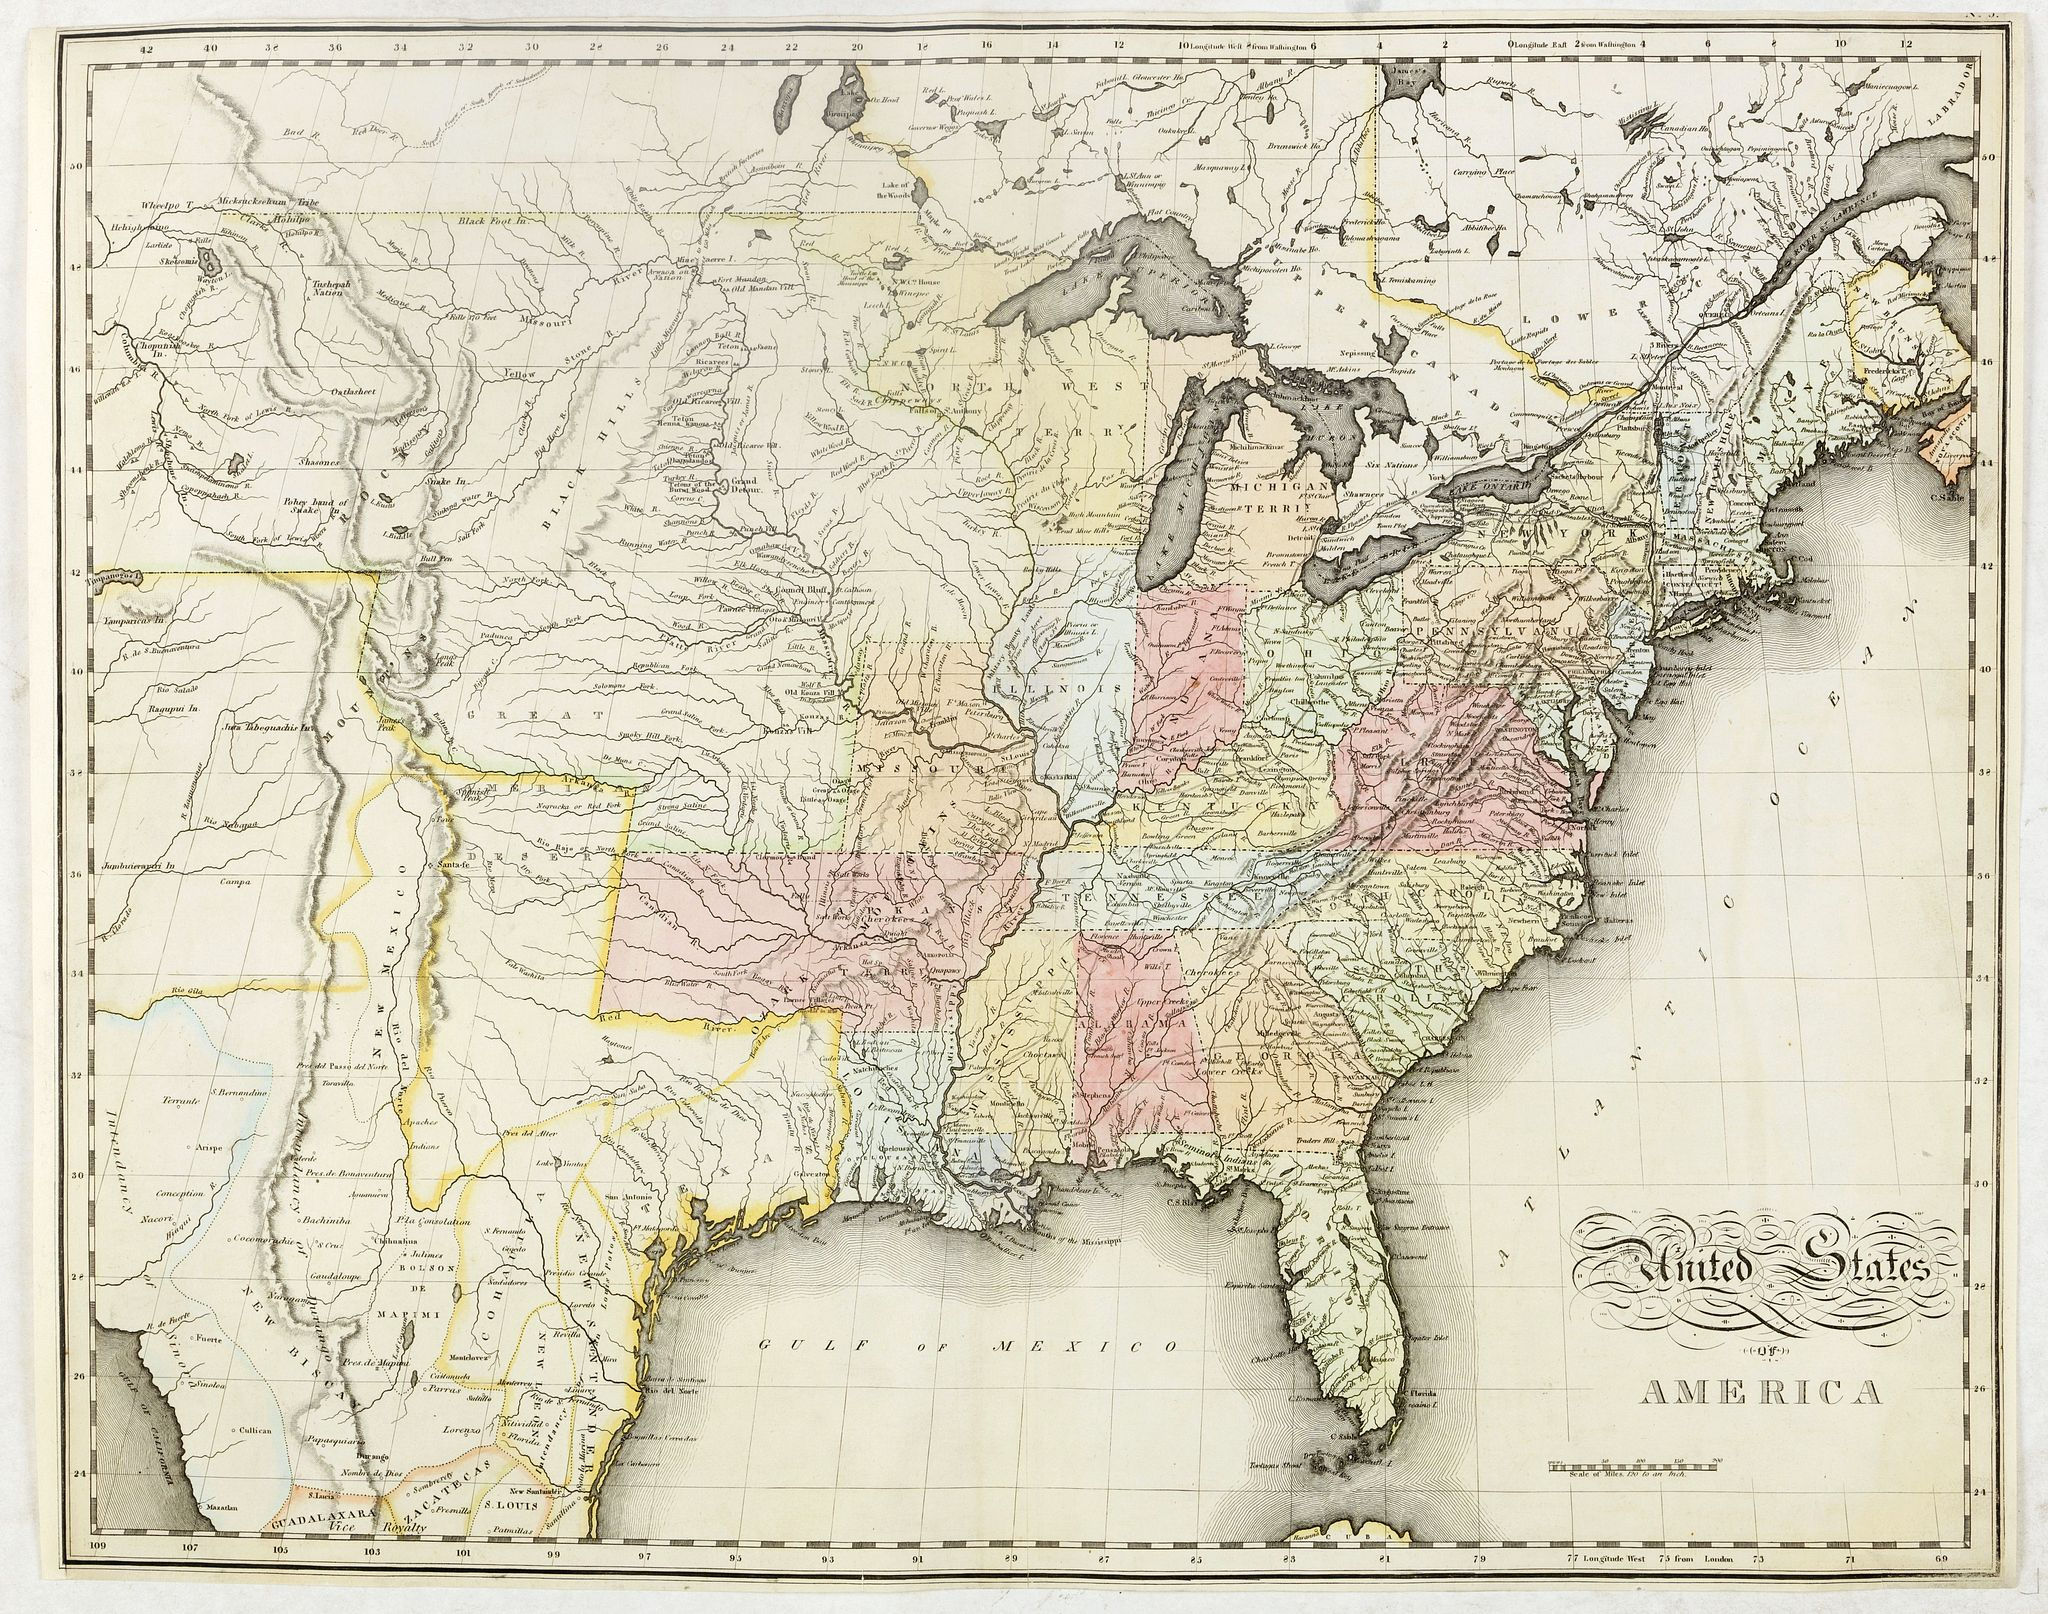 MELISH, J.,  United States of America., antique map, old maps